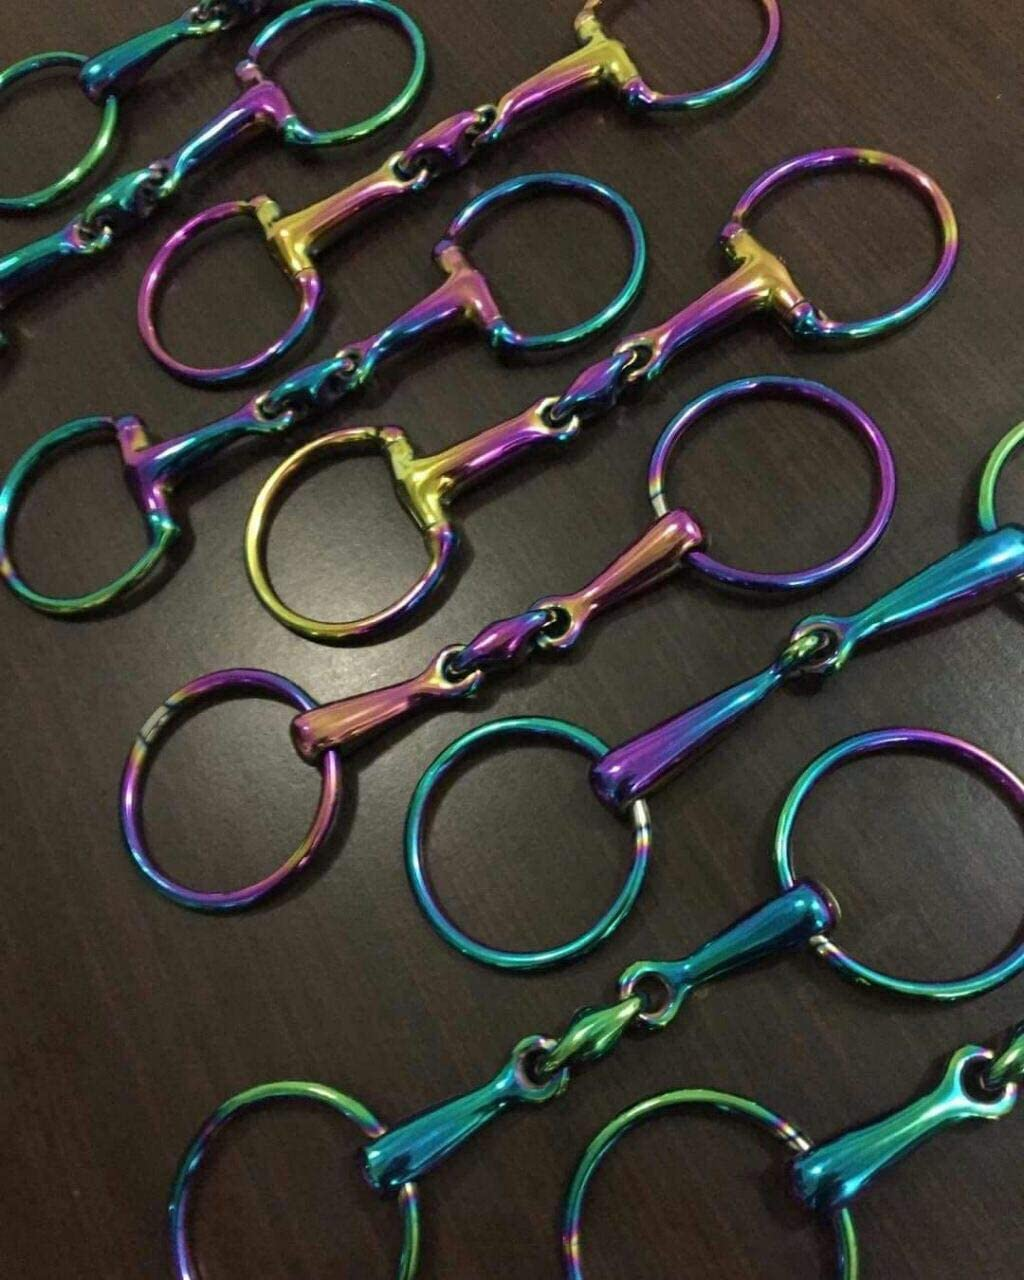 Lift Sports Horse Snaffle Bit Loose Ring Egg Butt Hanging Cheek Rainbow Multi Color with Lozenge Fat Multiple Size Tack Equestrian Shows